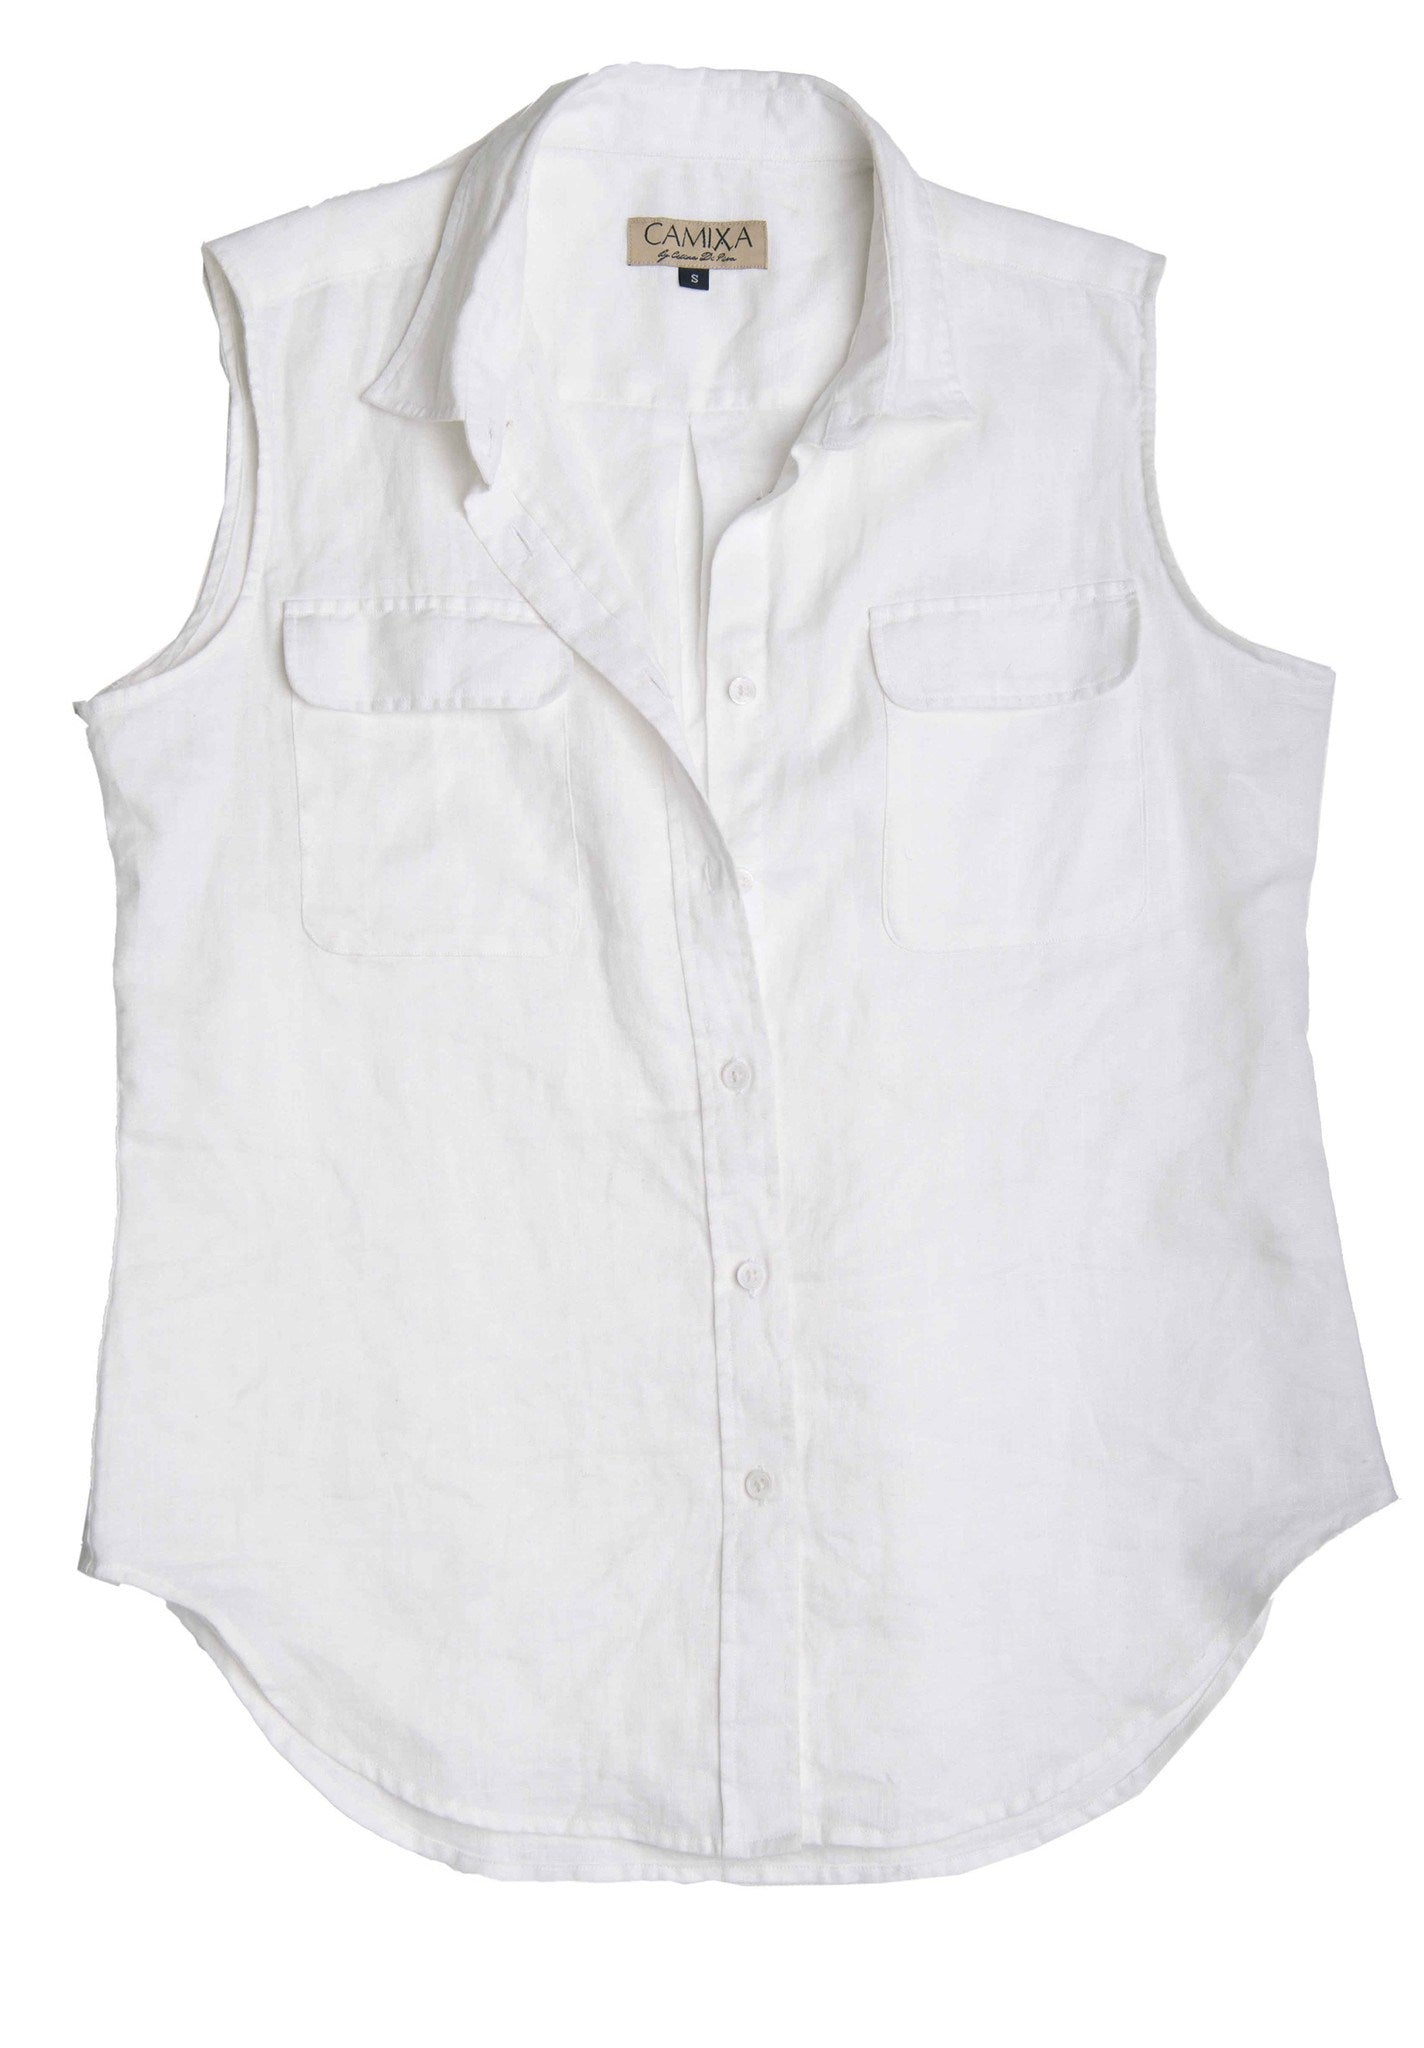 Aura White, Sleeveless Linen Shirt with Pockets